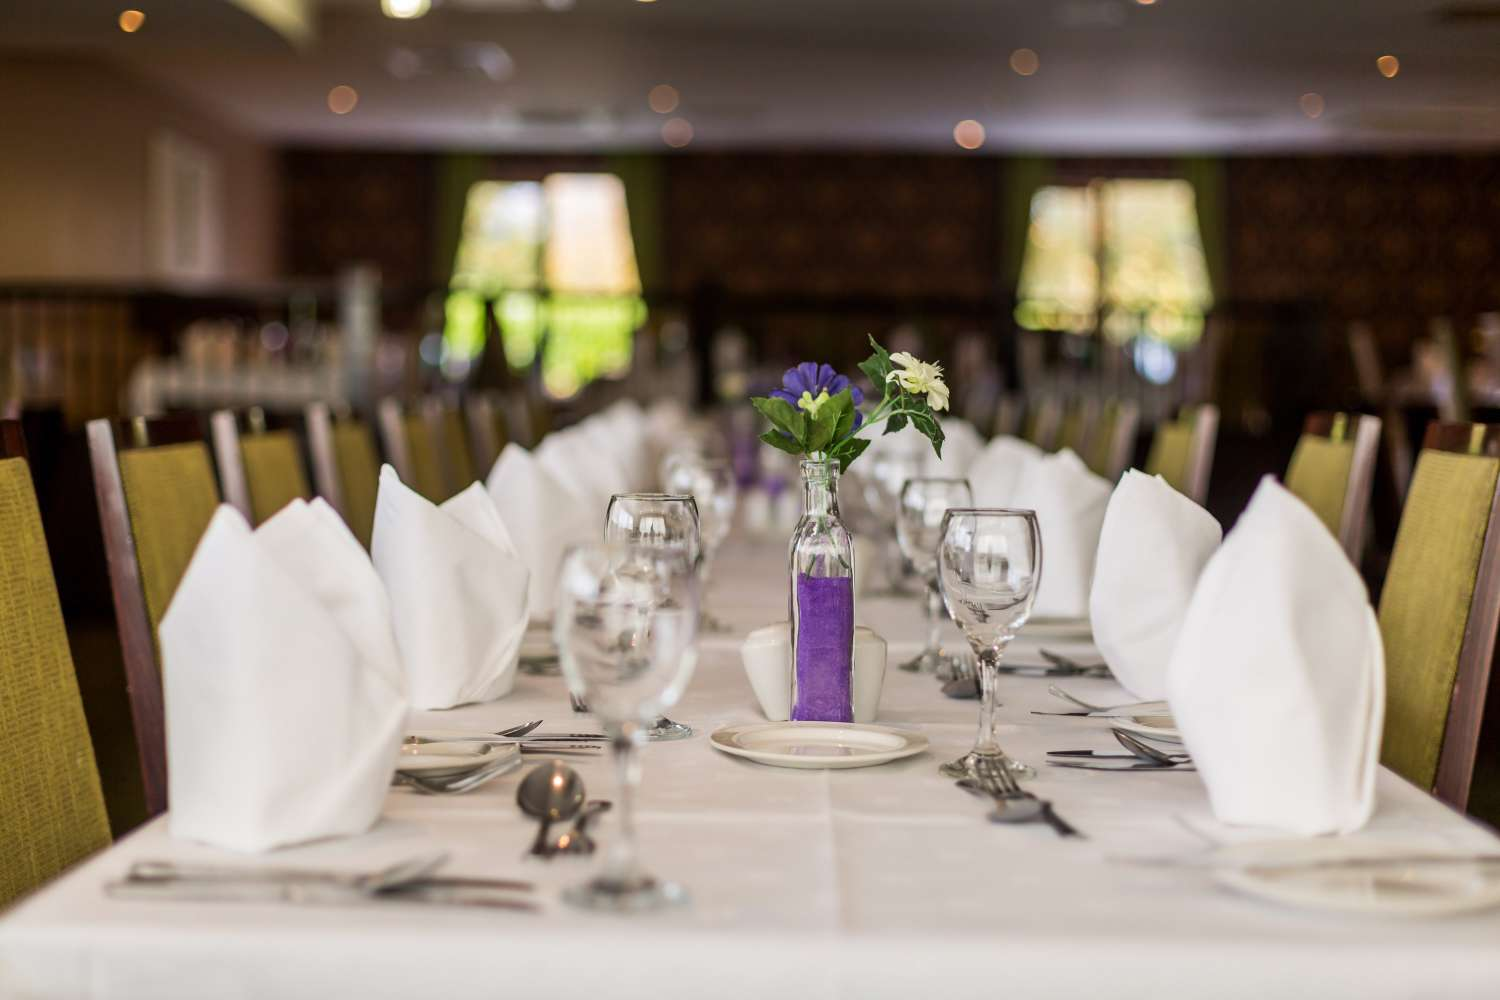 Hotels & hospitality Claremorris, F12 D1W3 - The McWilliam Park Hotel